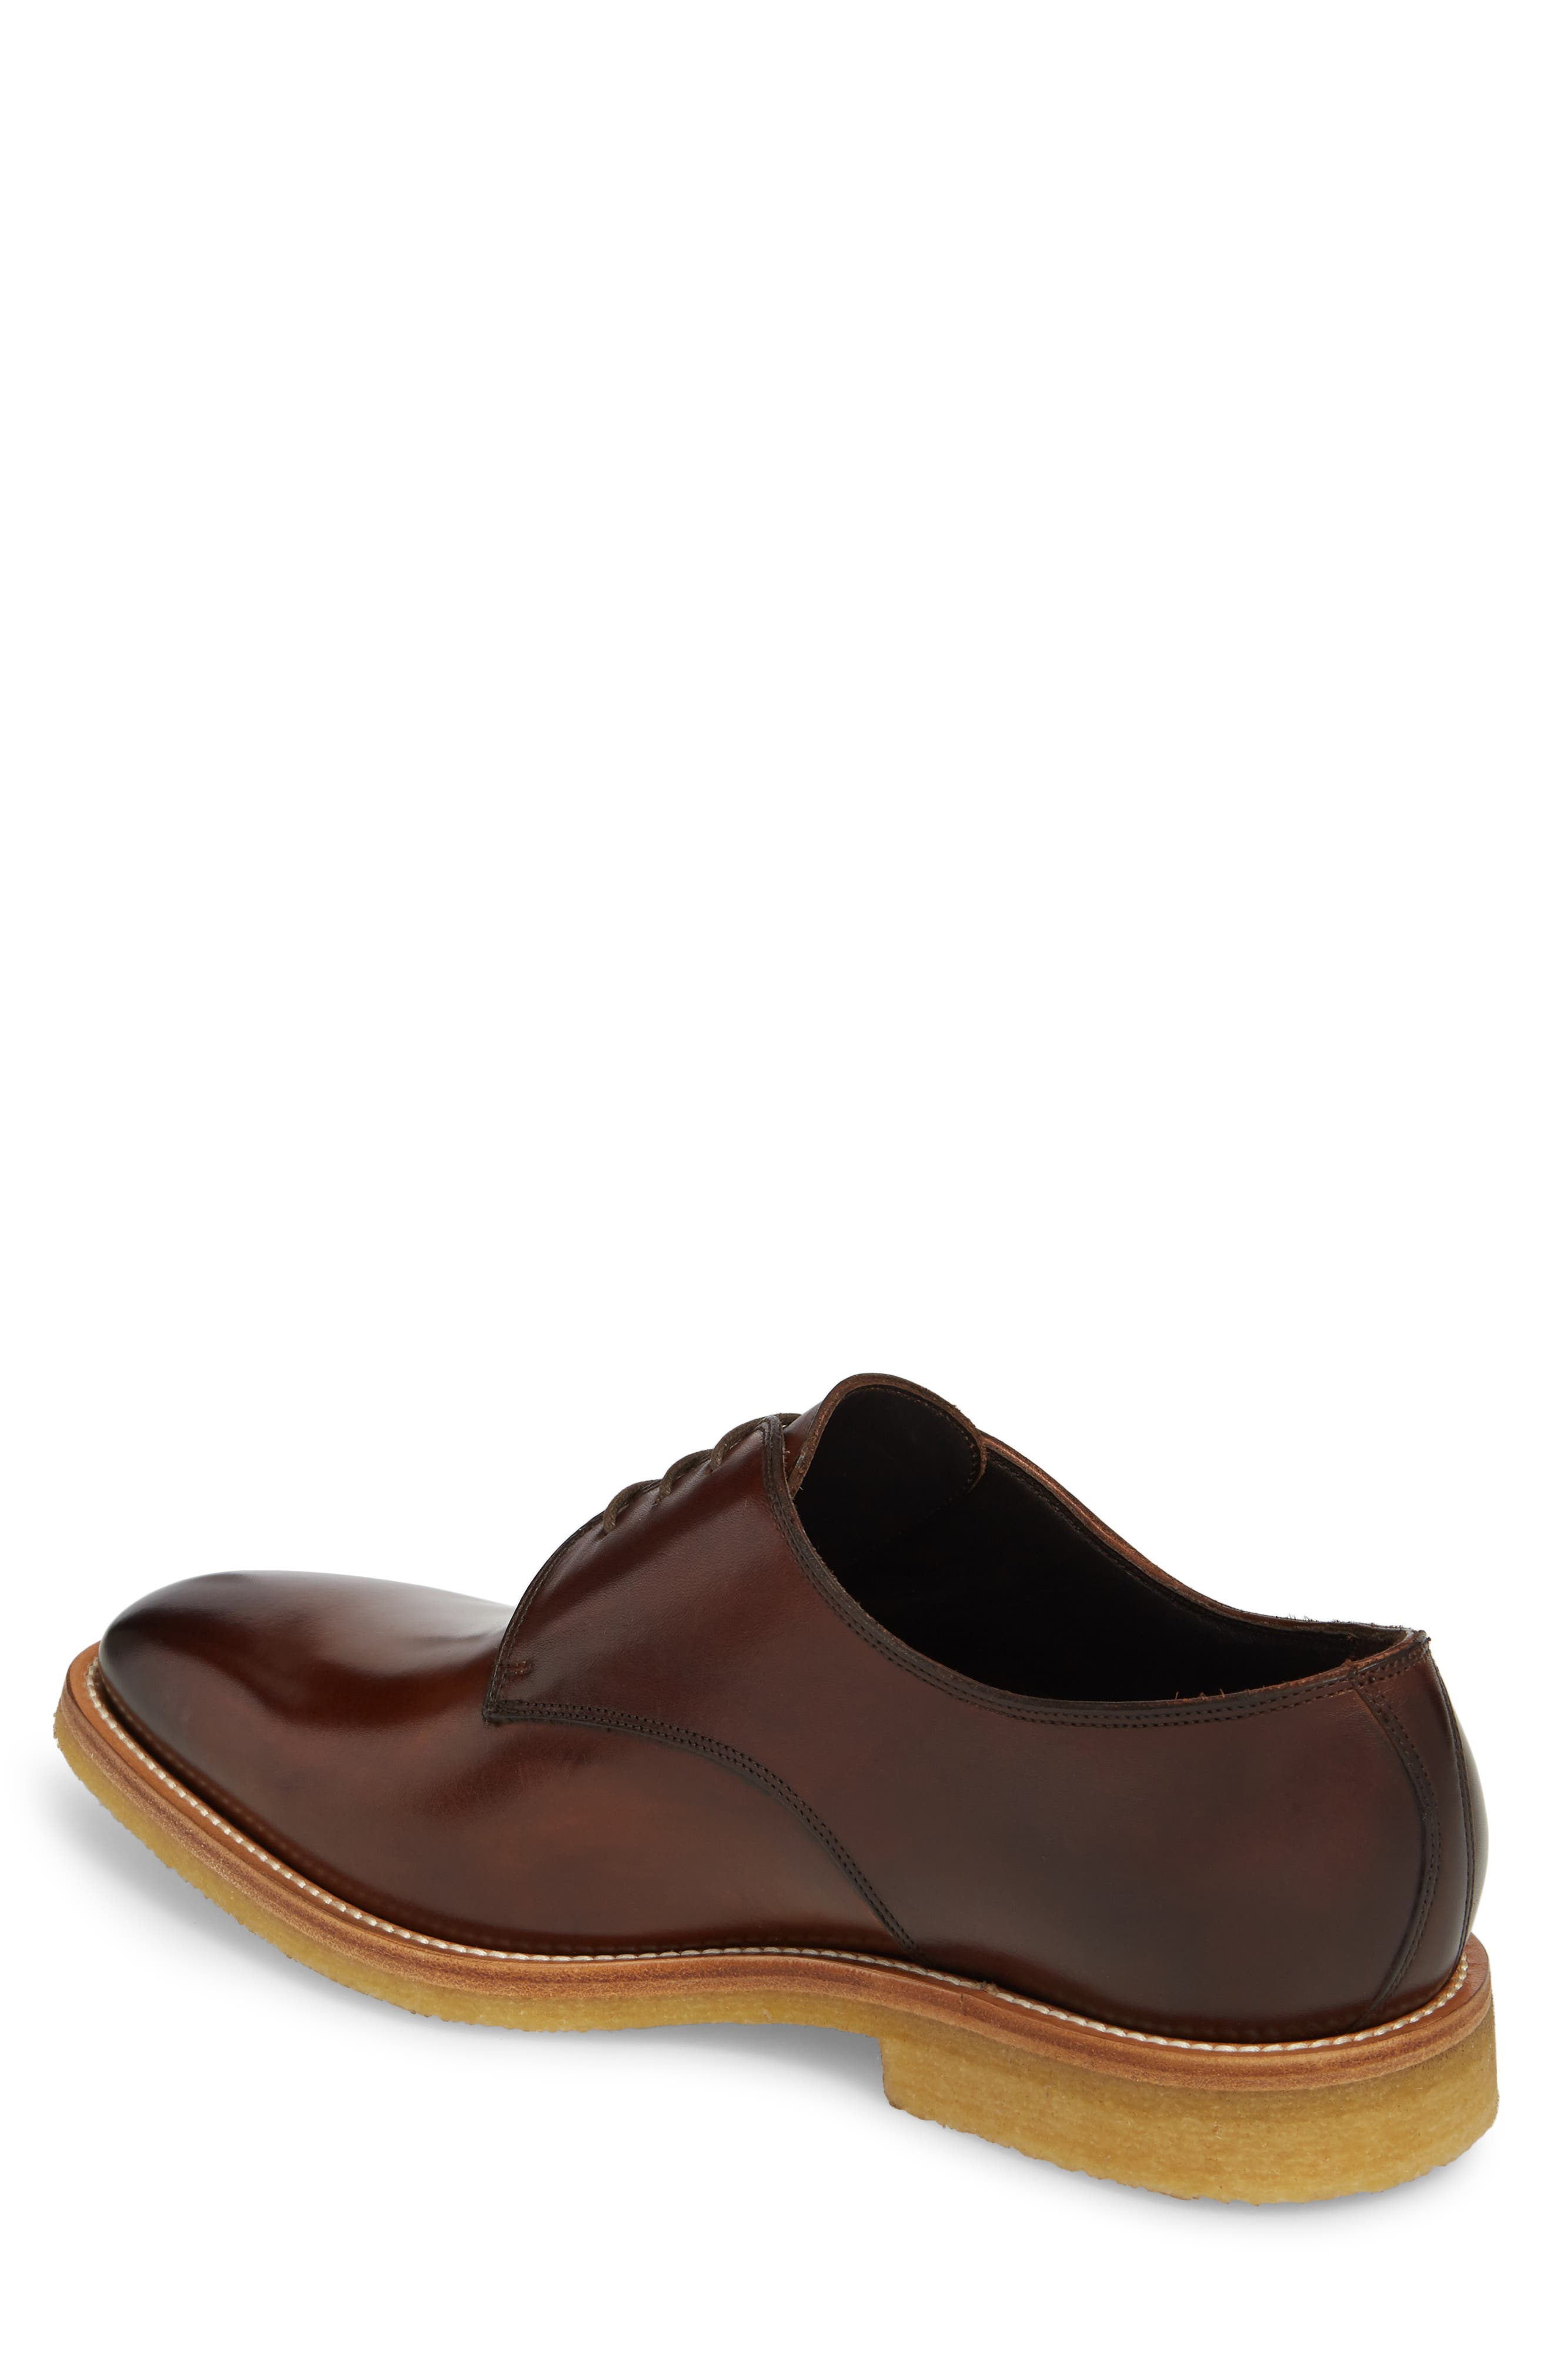 Caruso Plain Toe Derby,                             Alternate thumbnail 2, color,                             Chestnut Leather